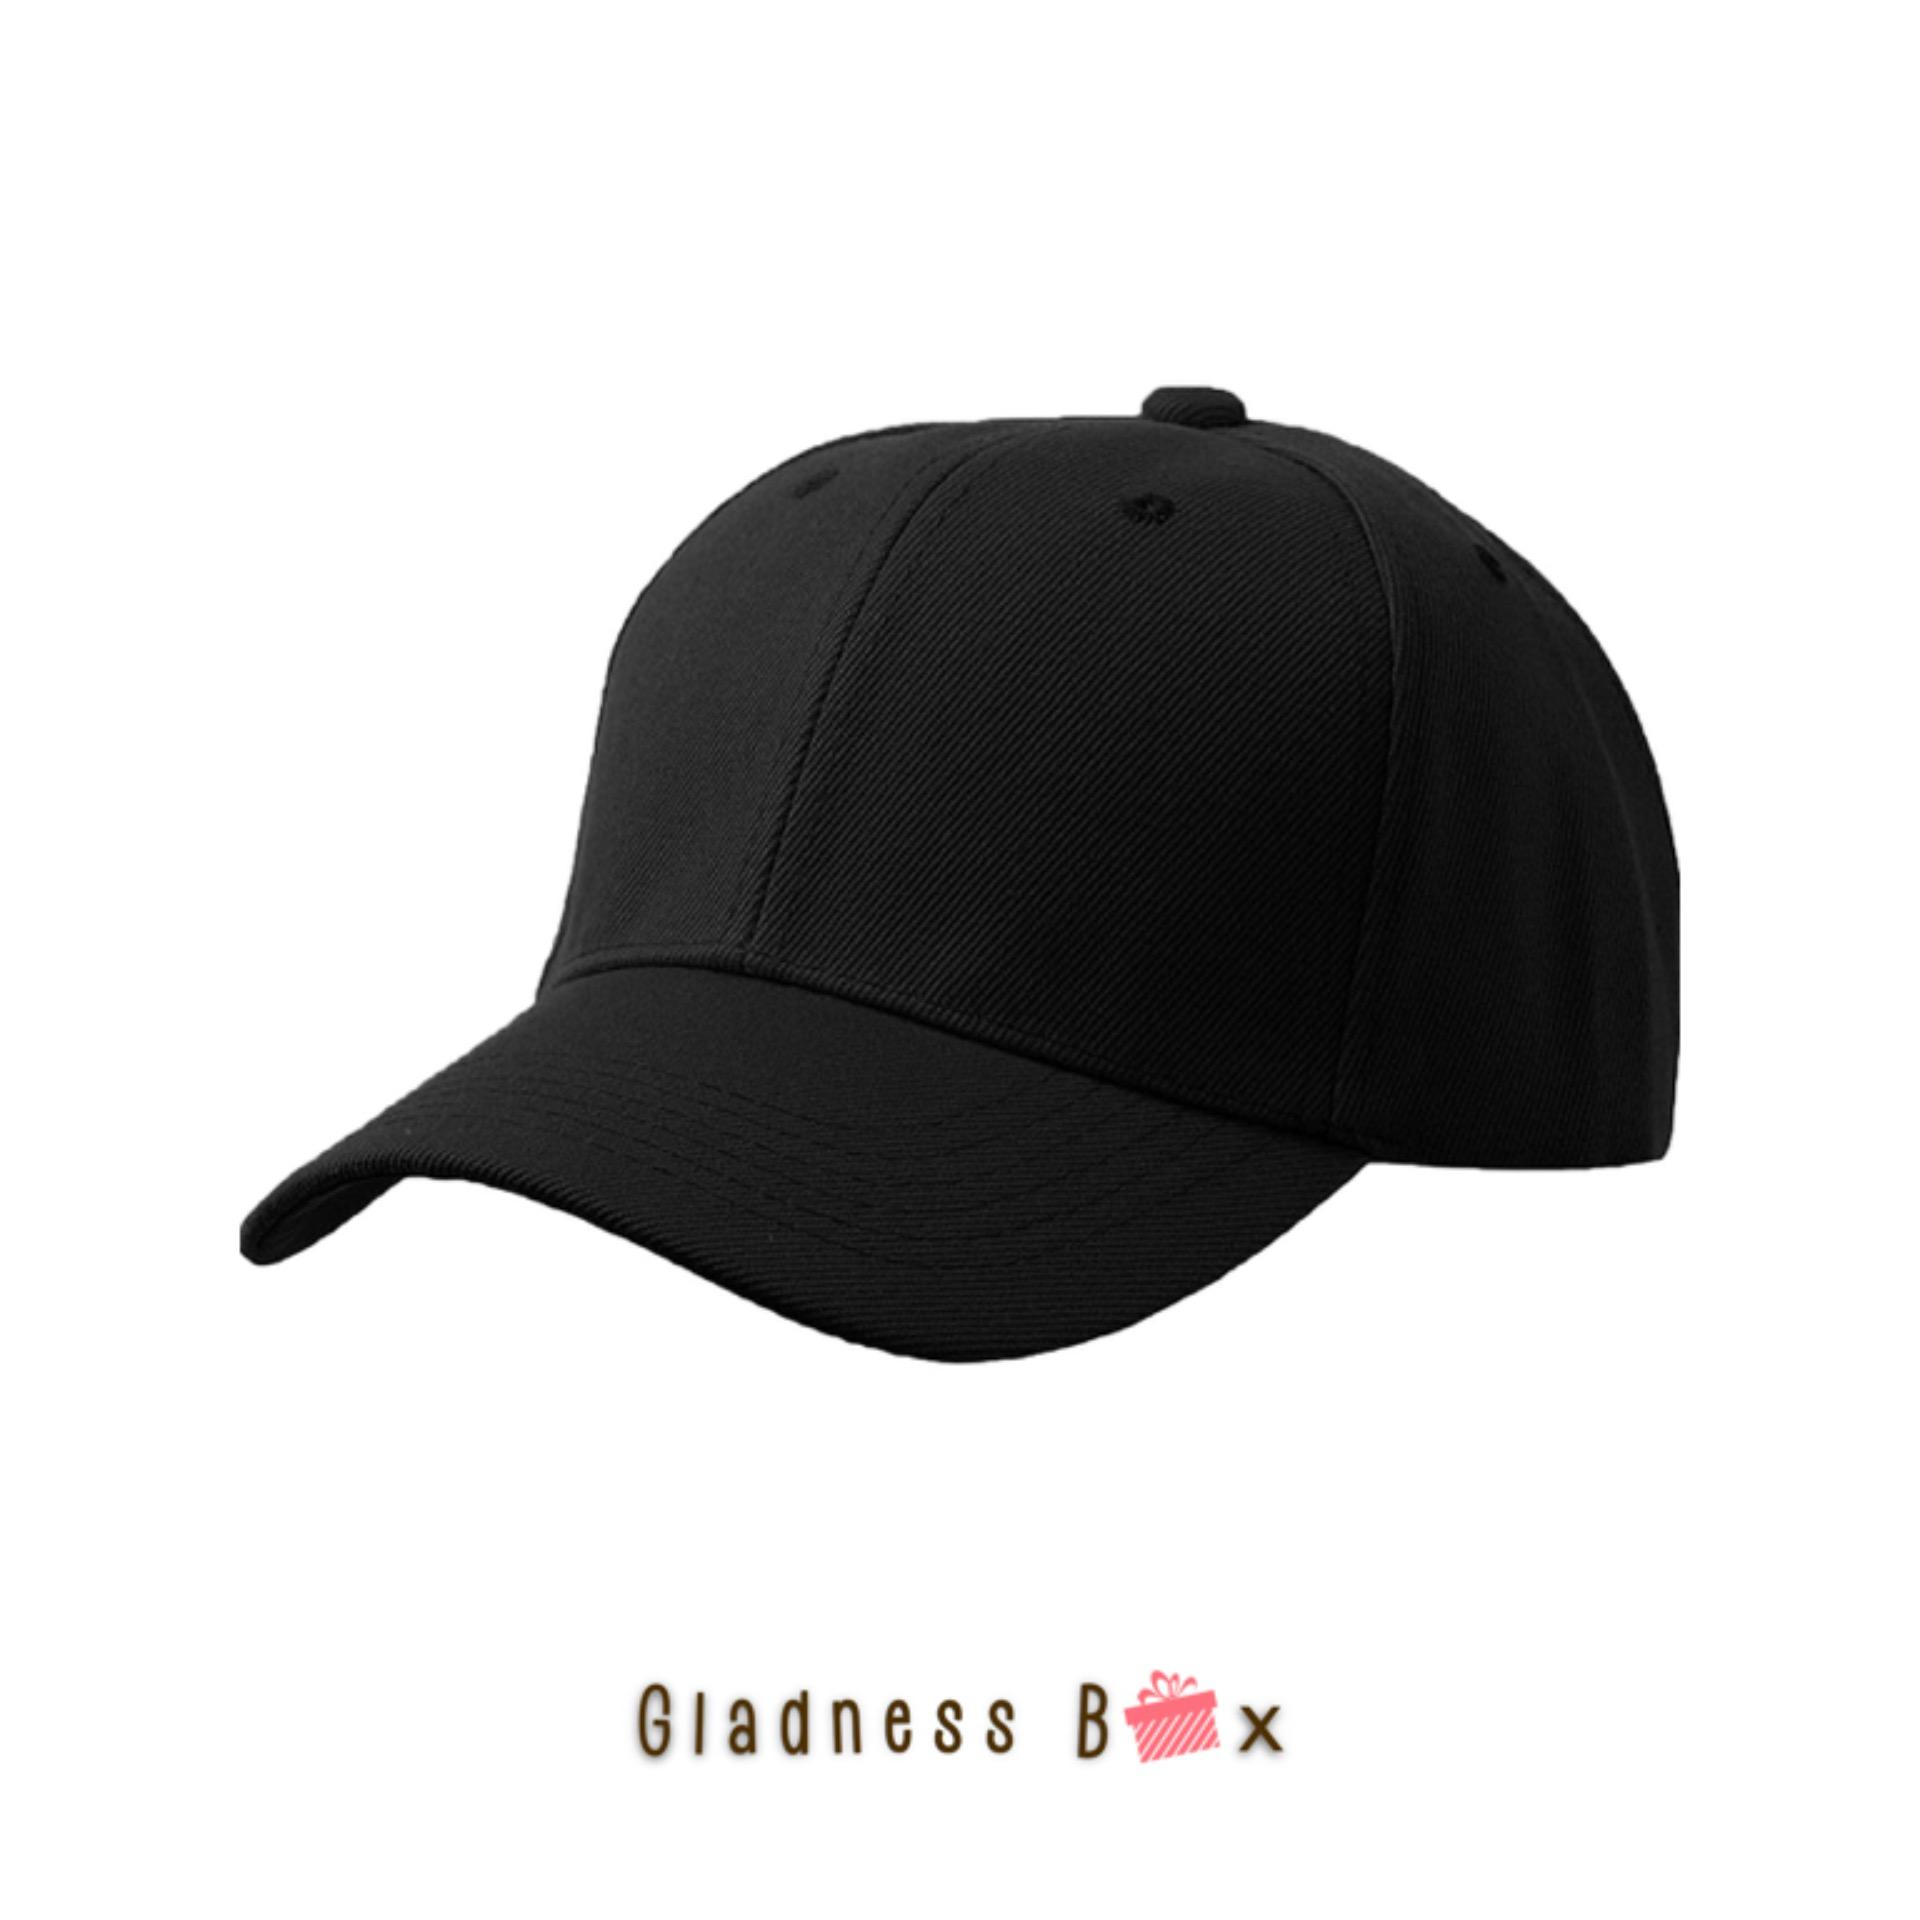 ee8b57053ec Gladness Box High Quality Plain Baseball Cap for Men Women Unisex